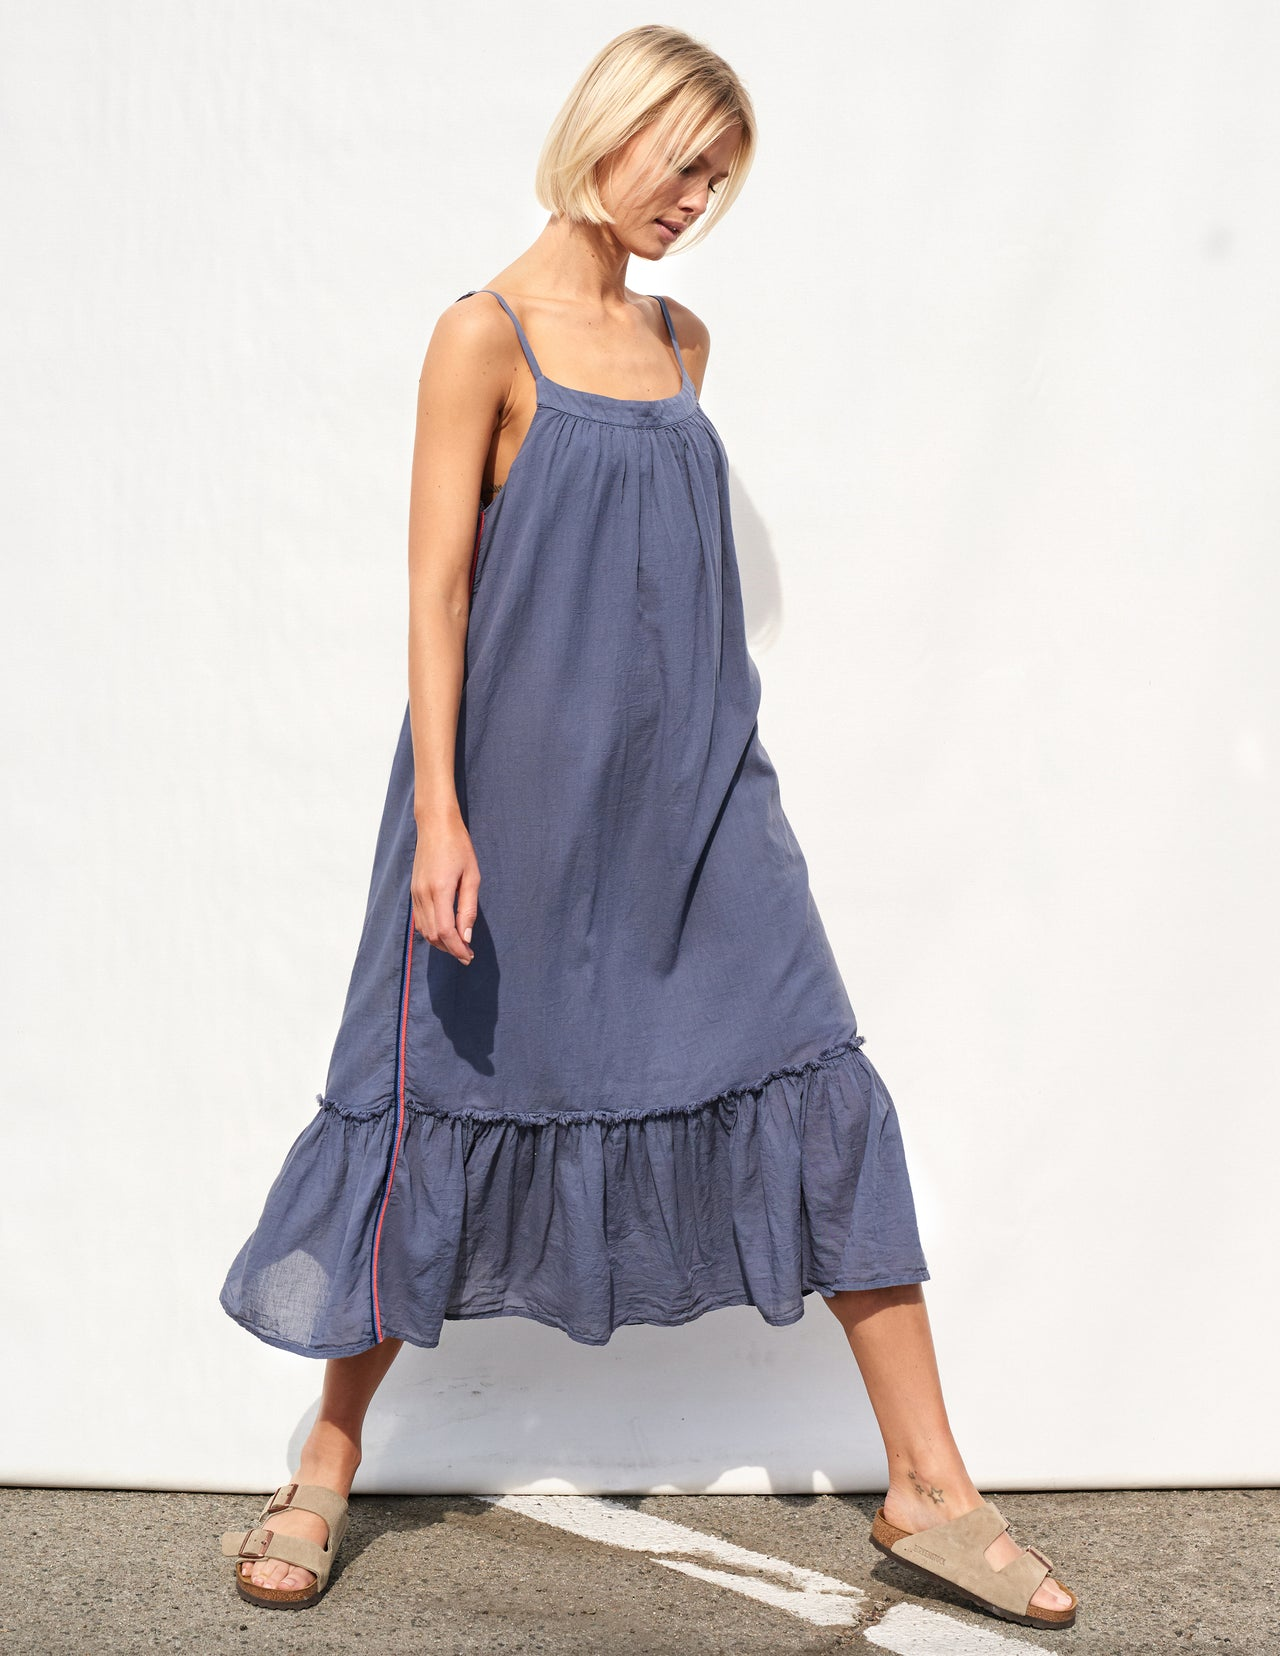 46a59f0856 Sundry Midi Ruffle Dress